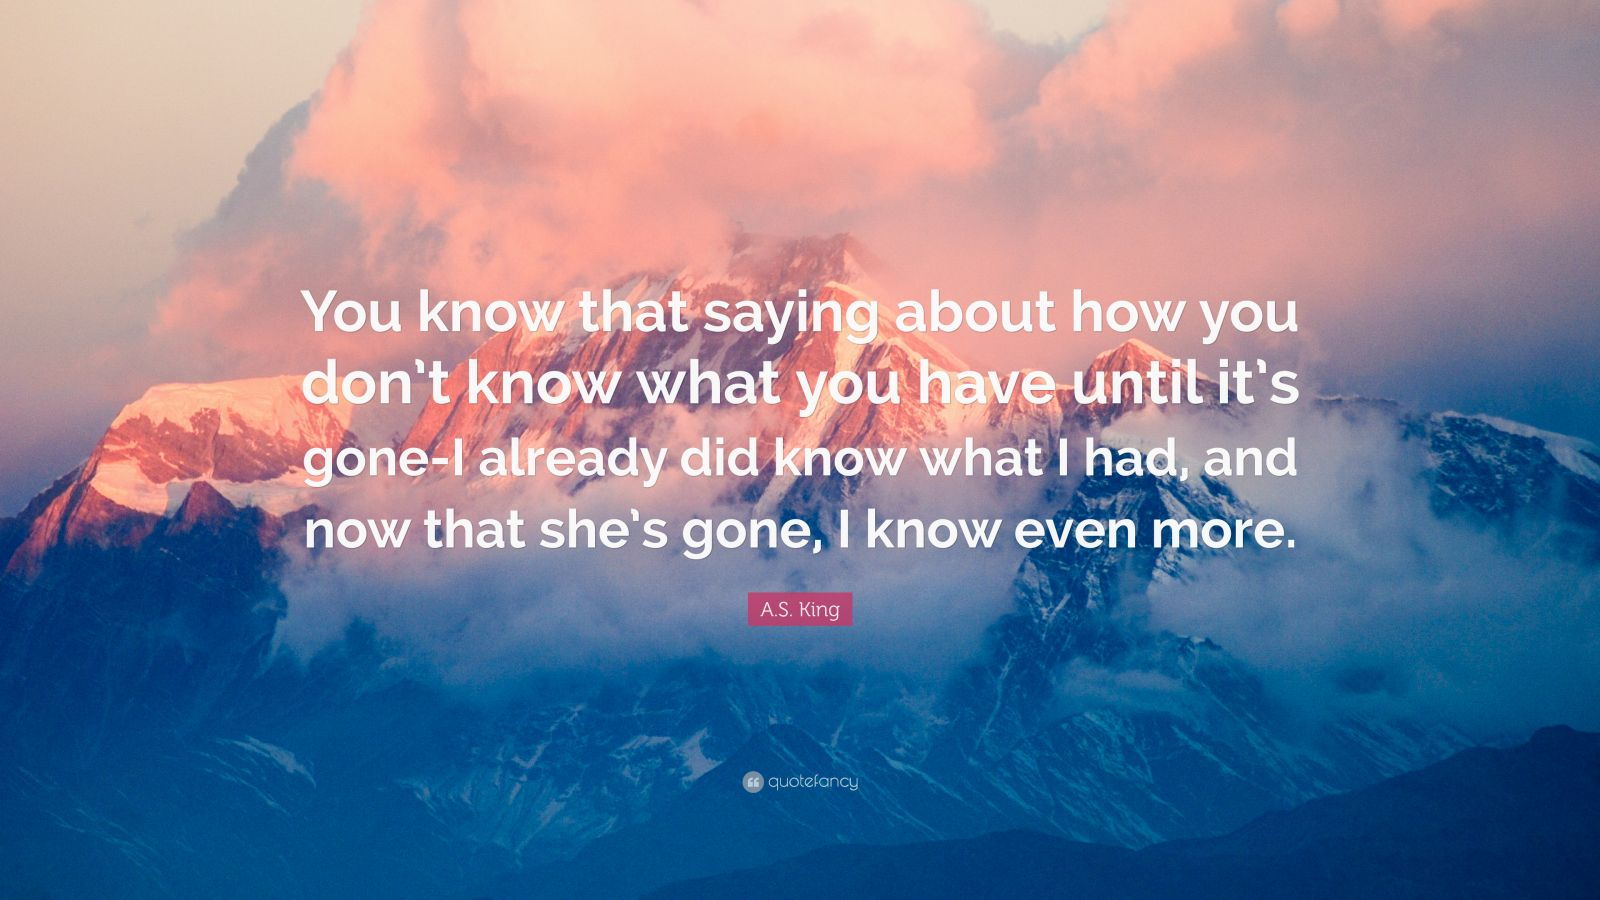 """A.S. King Quote: """"You know that saying about how you don't know what you have until it's gone-I already did know what I had, and now that she's gone, I know even more."""""""